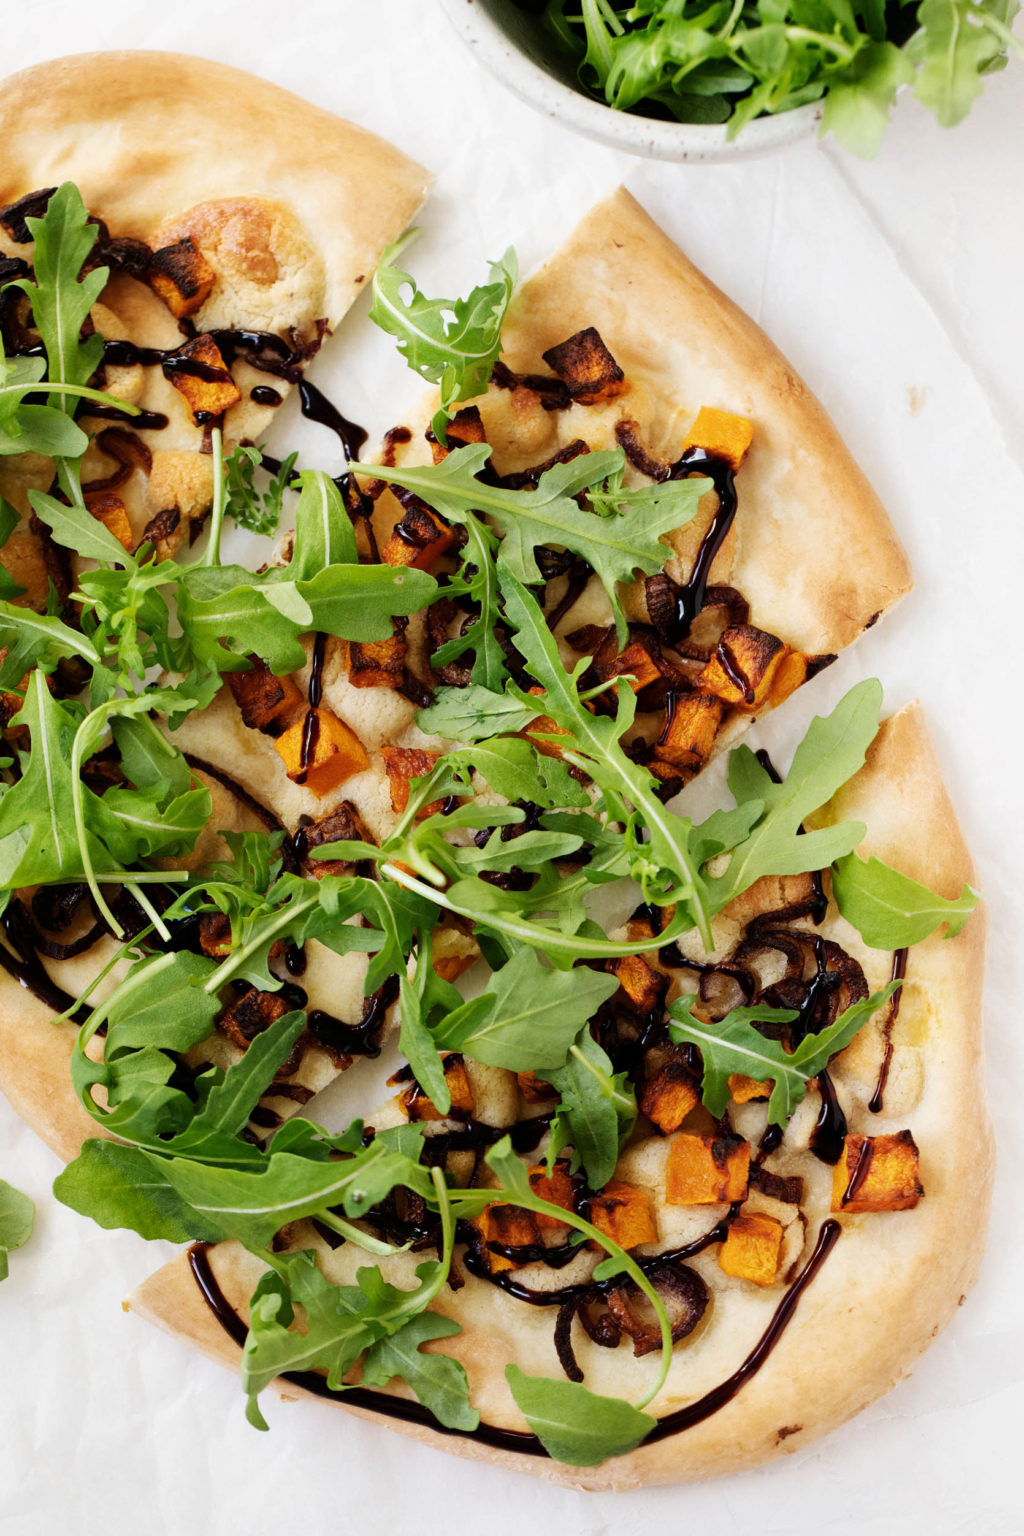 An overhead photo of vegan butternut red onion pizza, garnished generously with fresh arugula and drizzled with balsamic vinegar.